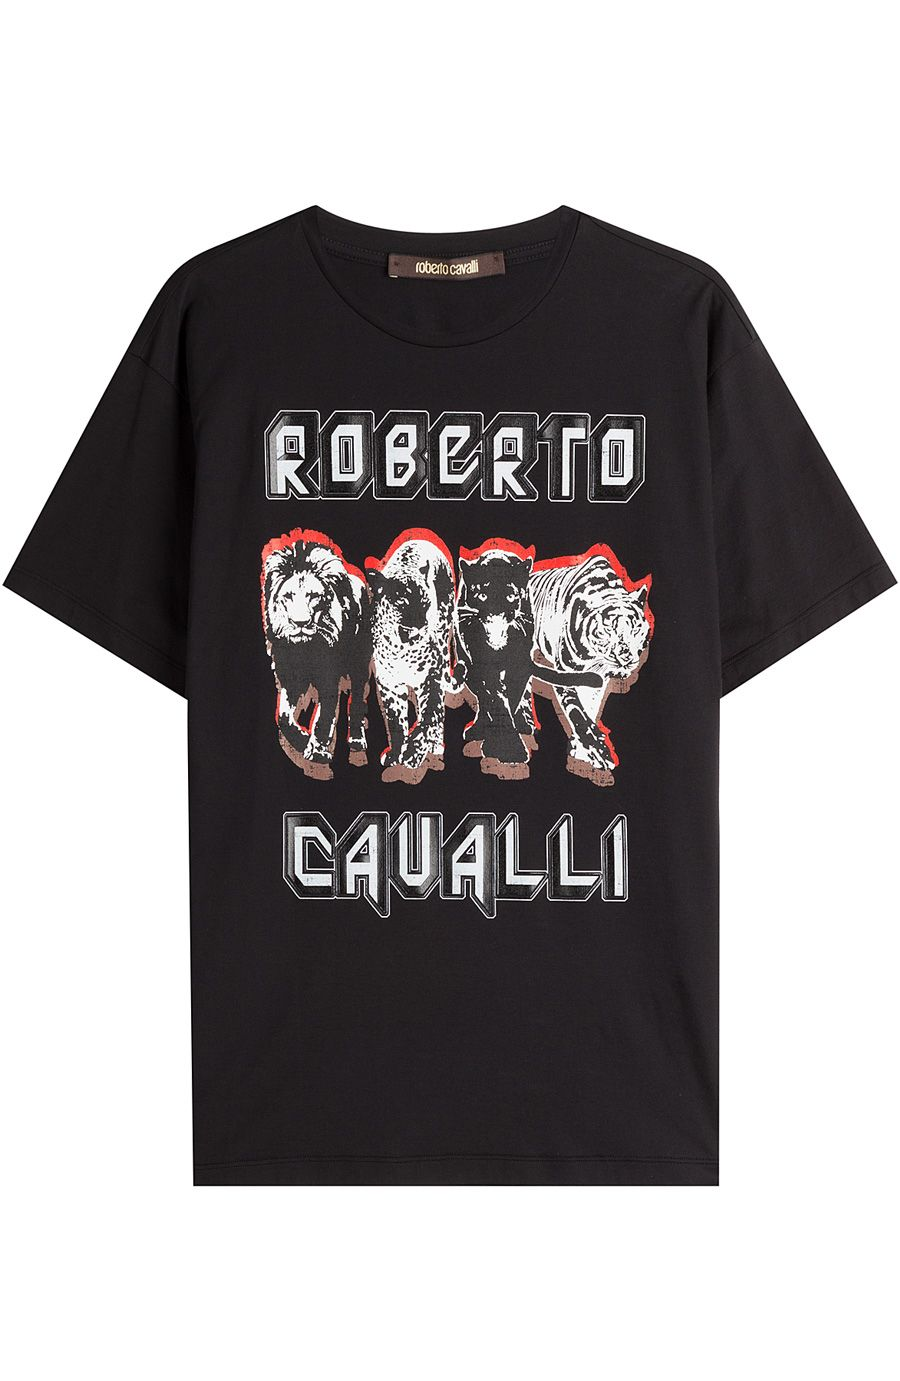 ROBERTO CAVALLI Printed Cotton T-Shirt. #robertocavalli #cloth #shortsleeve